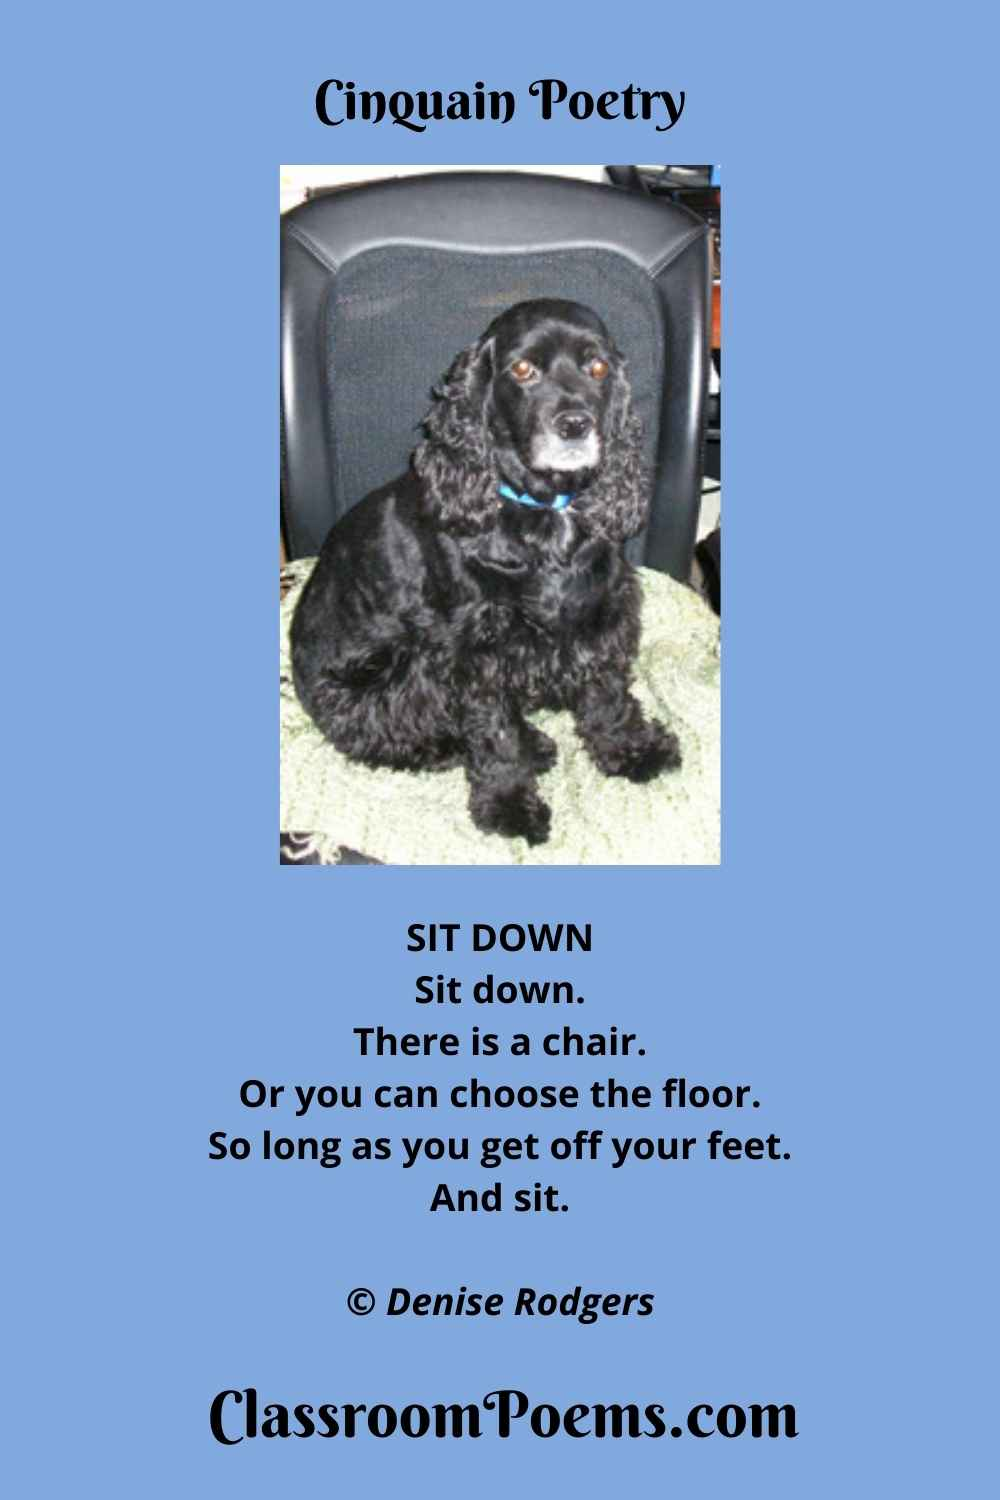 COCKER SPANIEL Cinquain Poem by the Poetry Lady Denise Rodgers on ClassroomPoems.com.